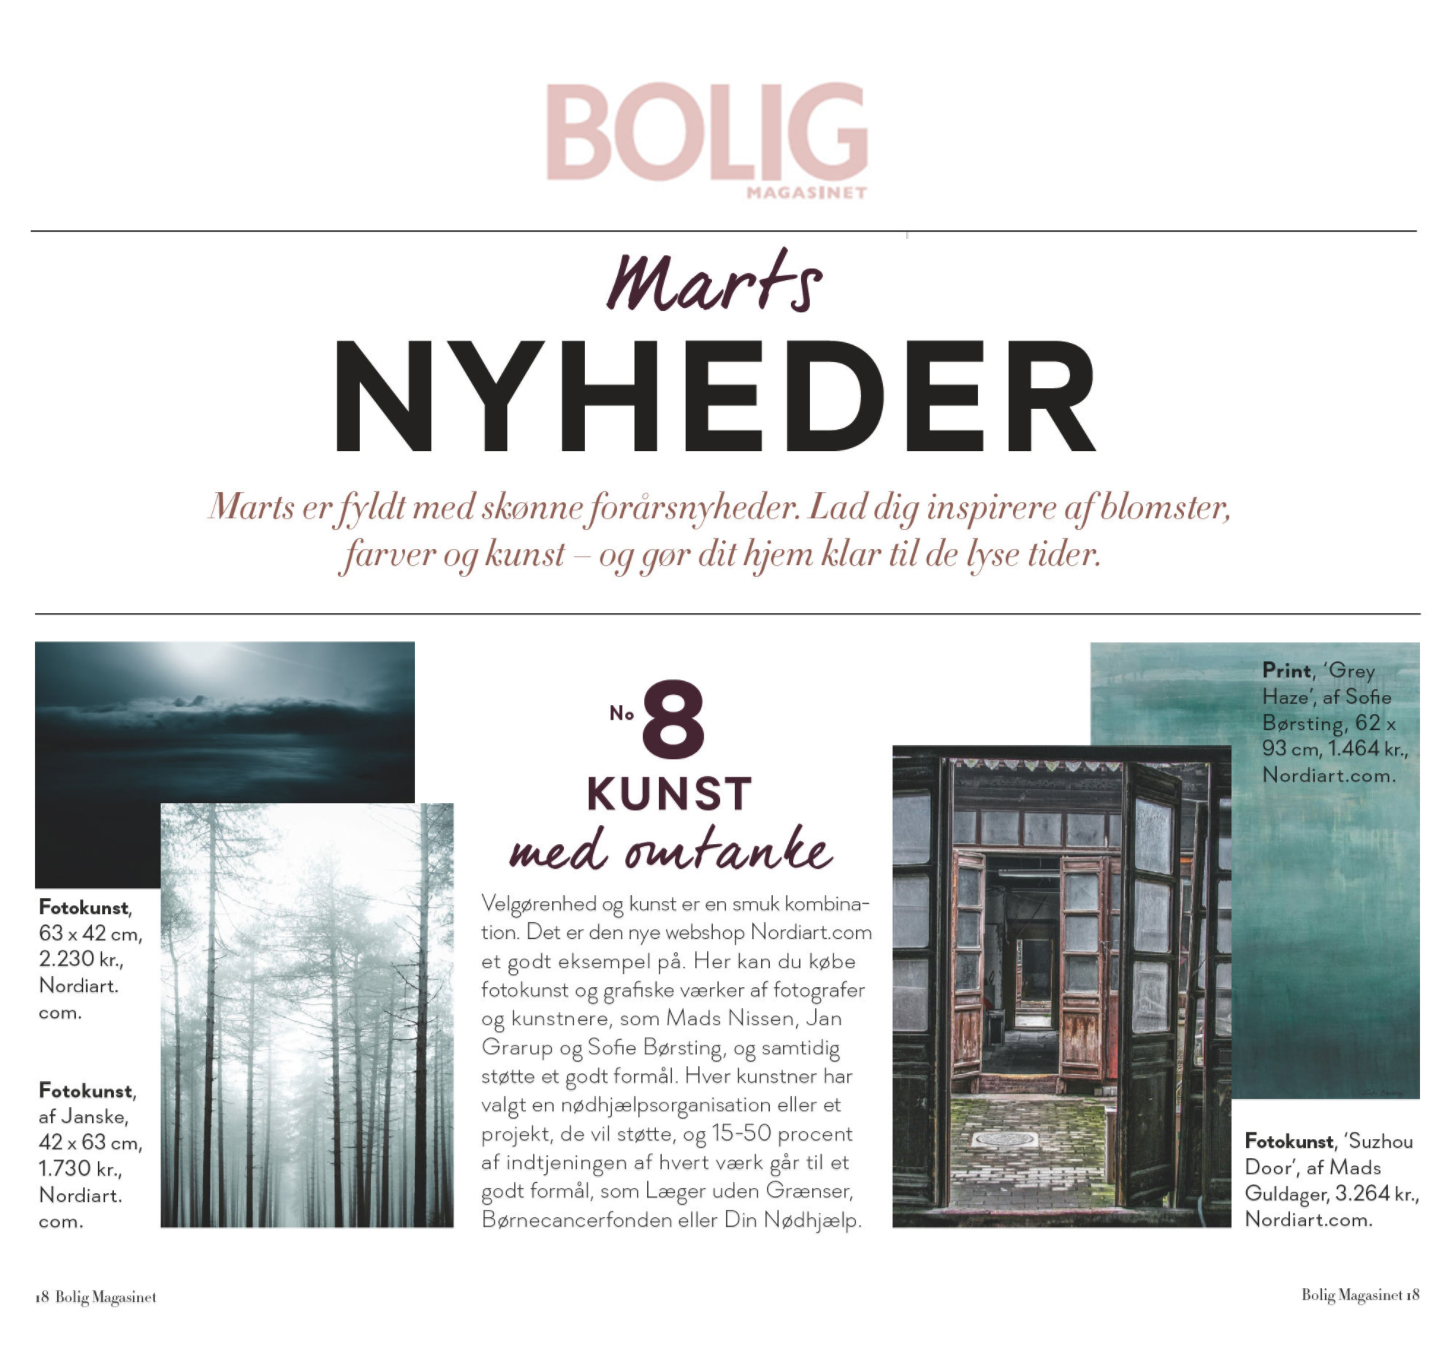 Nordi Art featured in Bolig Magasinet